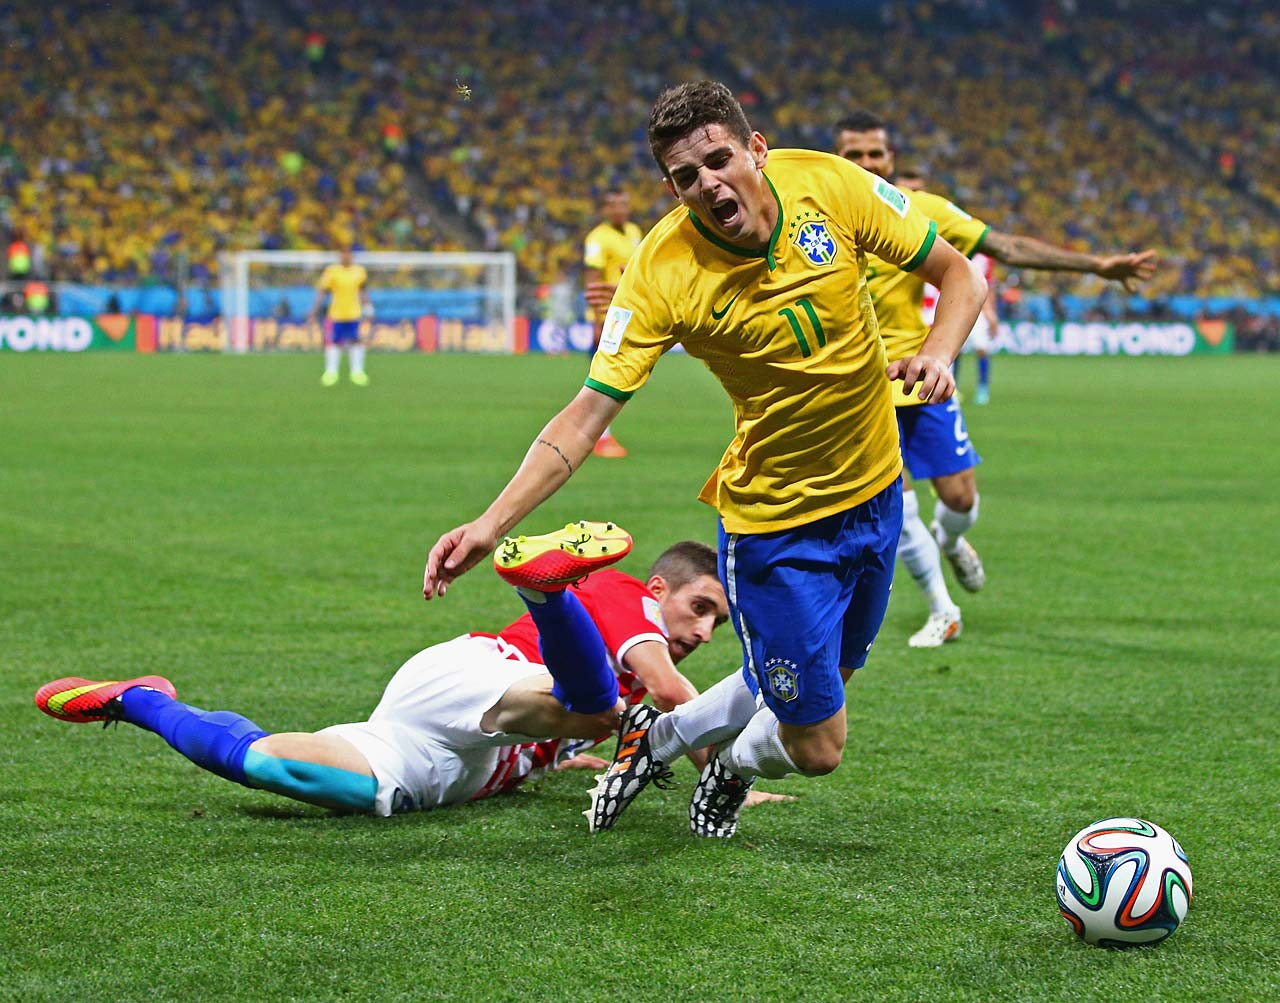 Oscar of Brazil is tripped up by Sime Vrsaljko of Croatia in the second half.